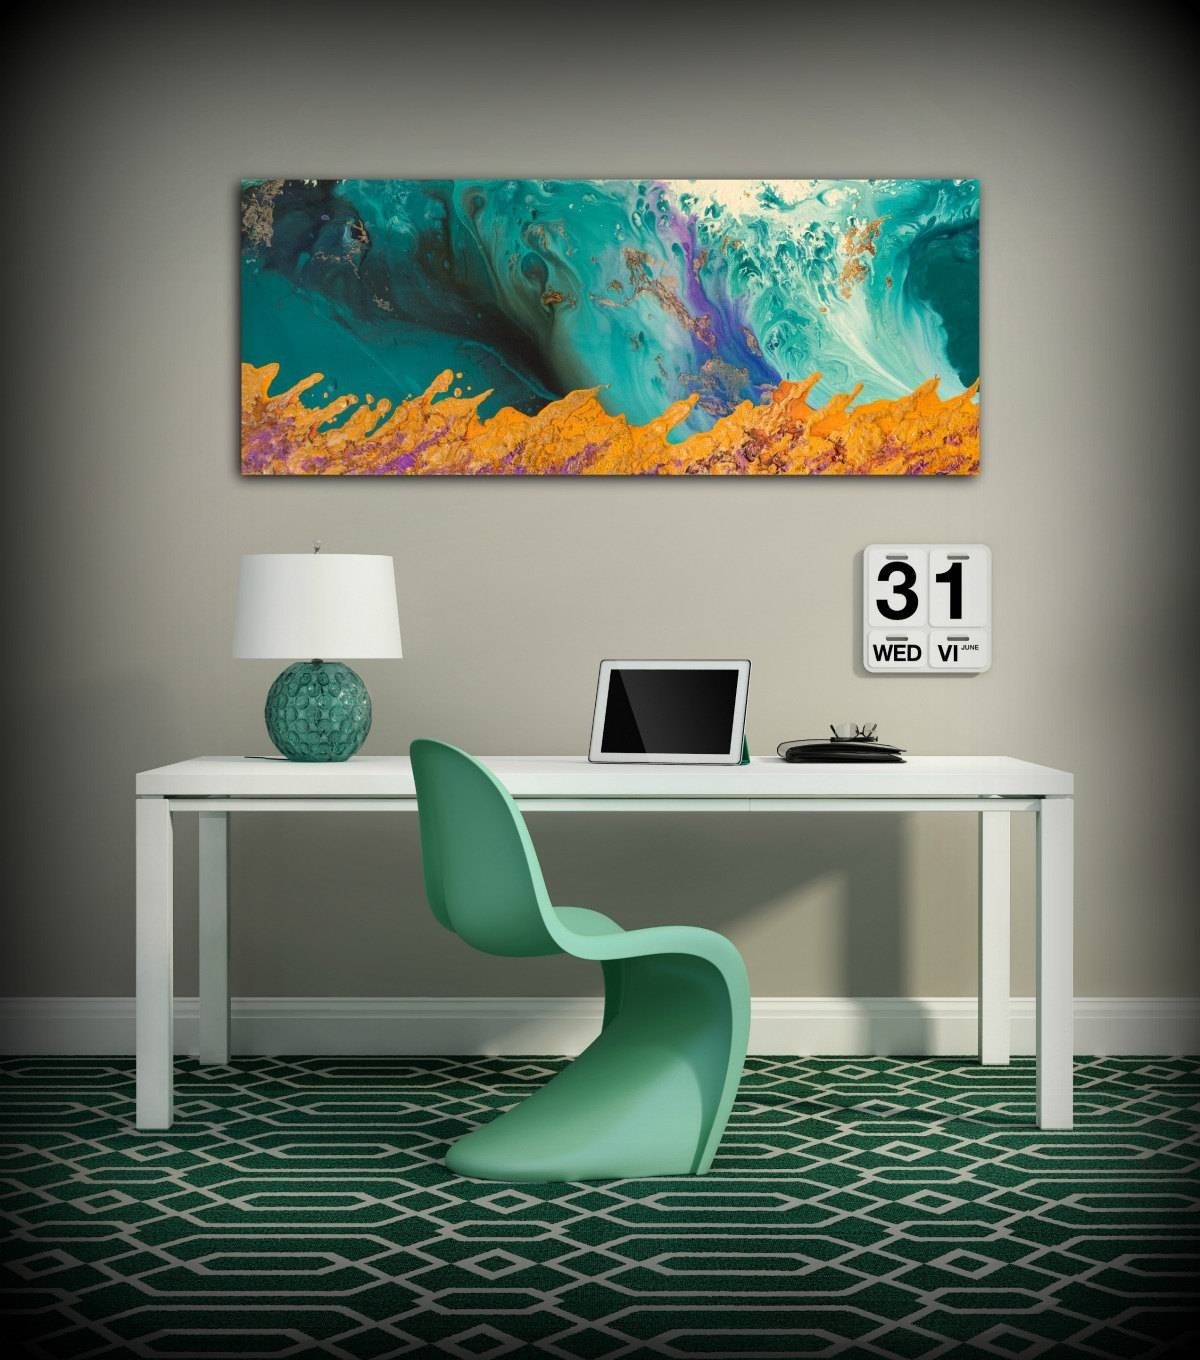 20 Collection of Orange And Turquoise Wall Art